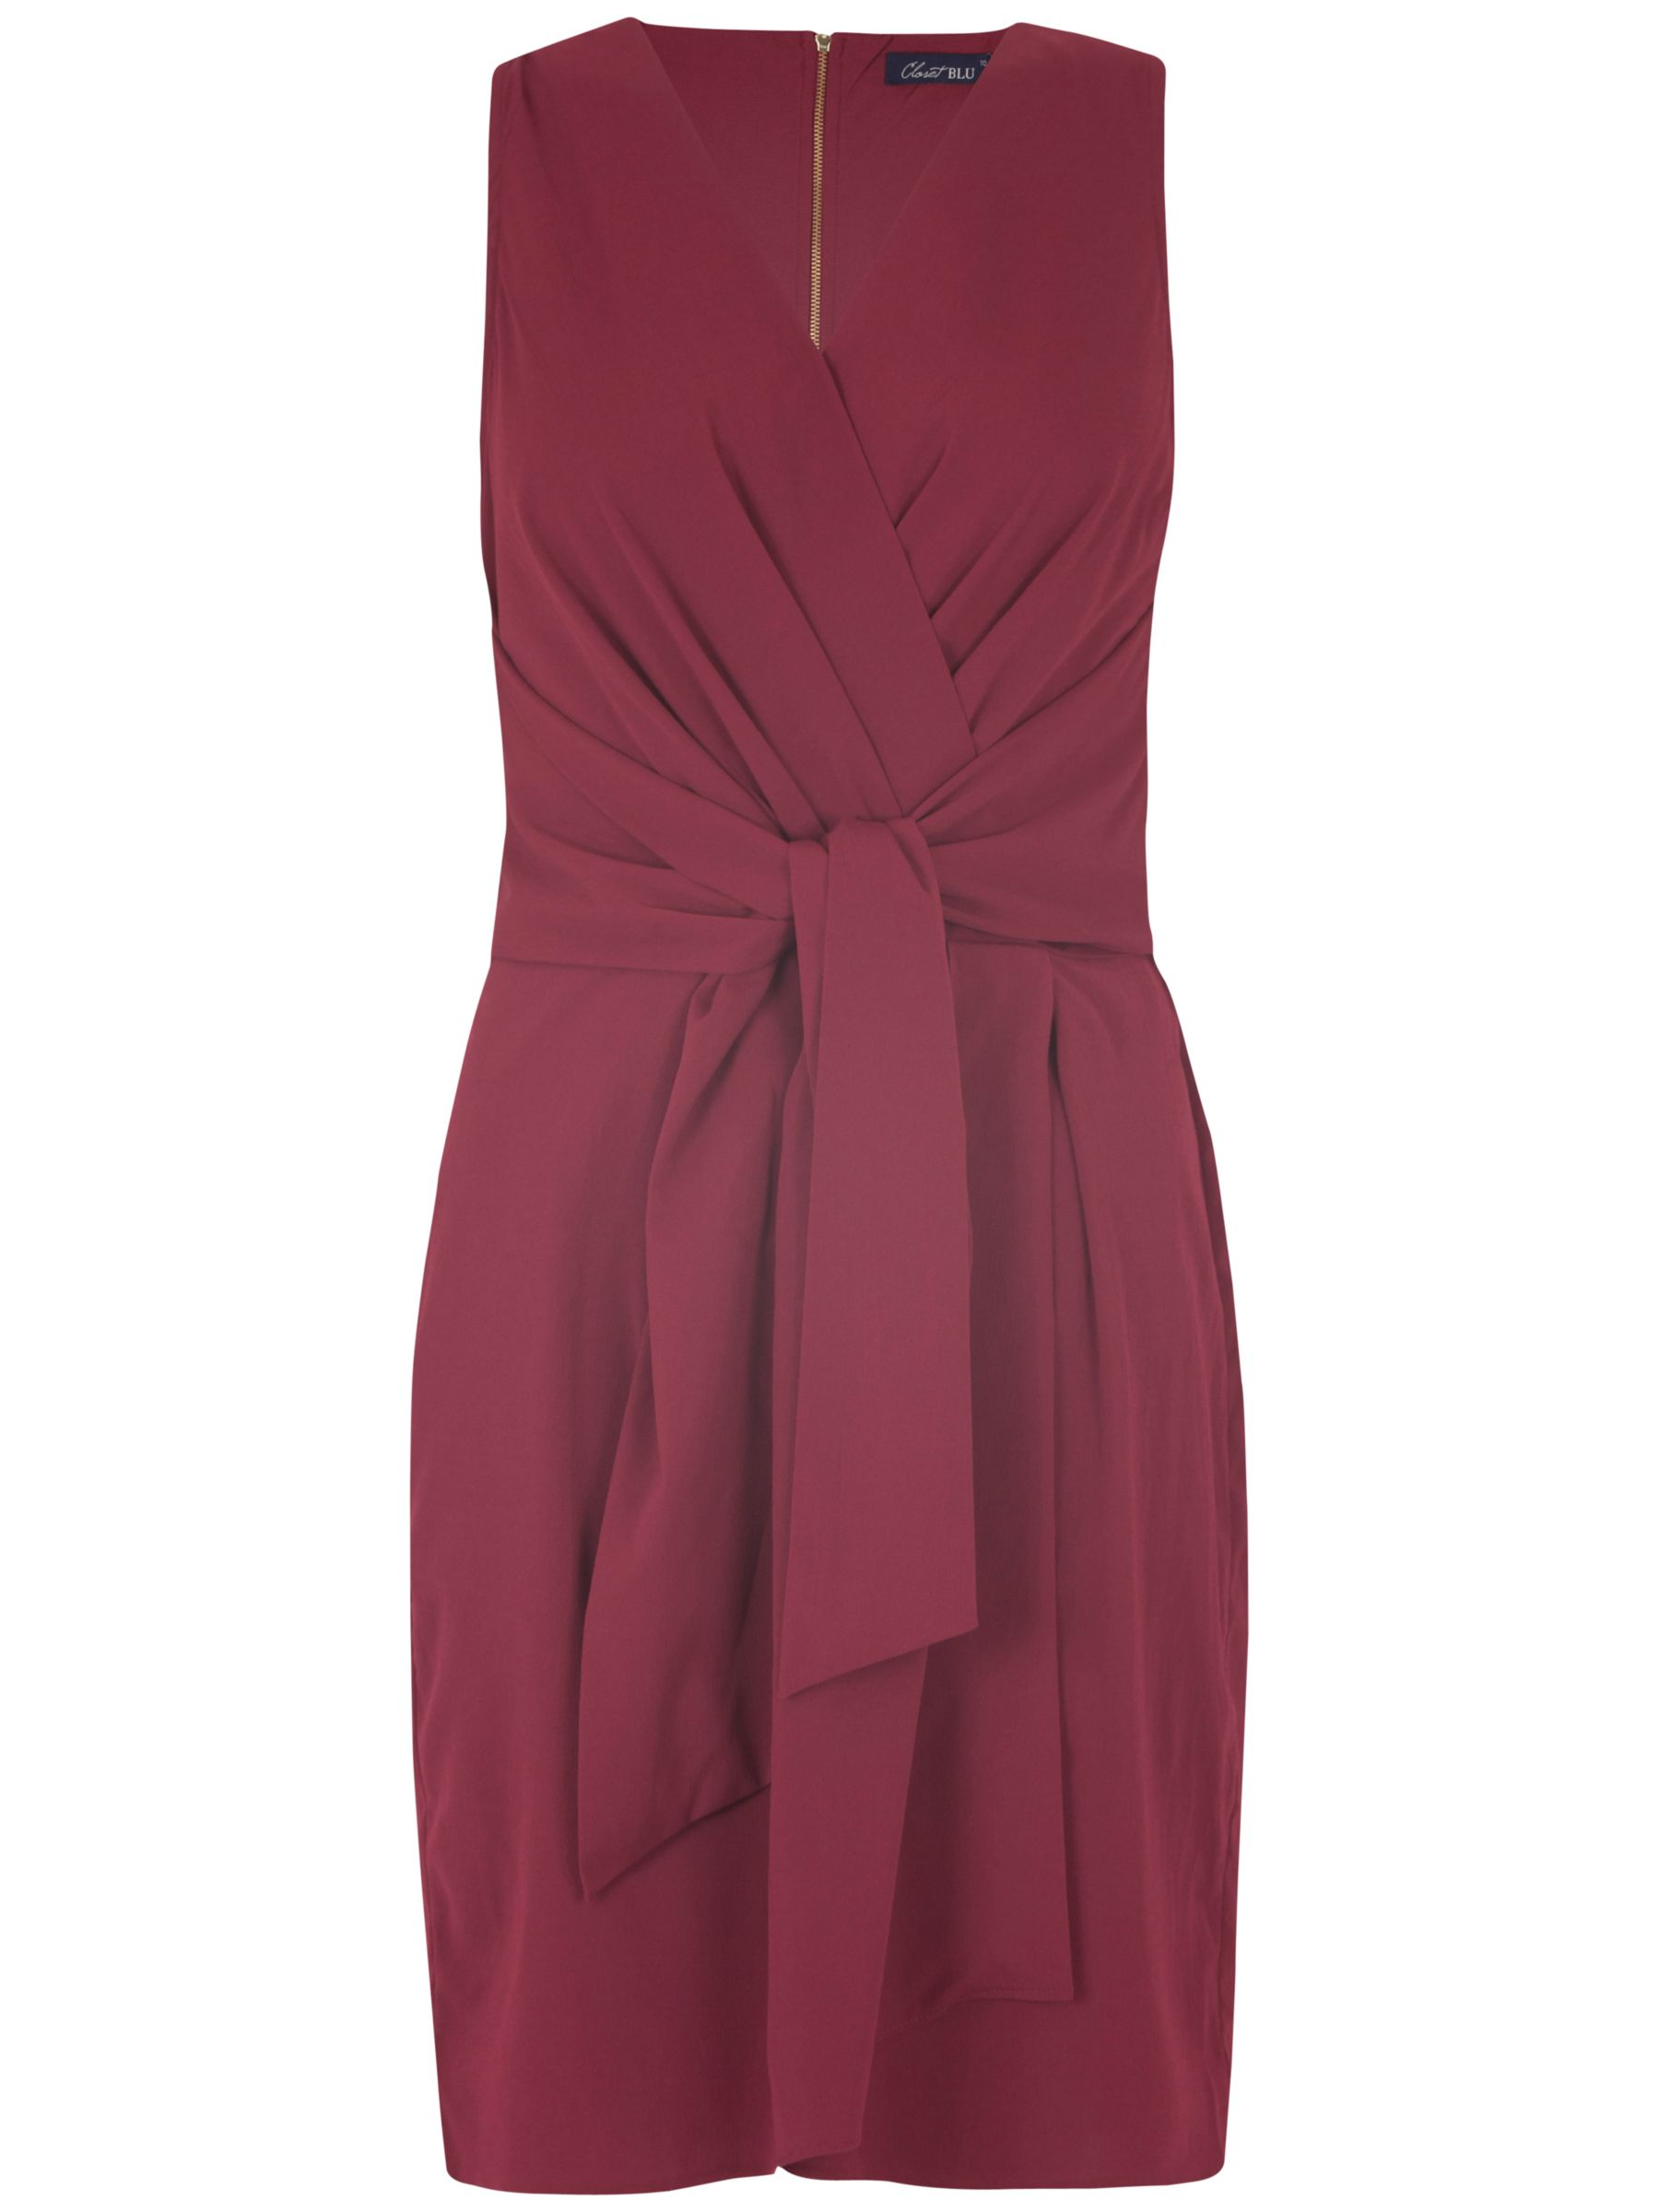 closet tie front dress burgundy, closet, tie, front, dress, burgundy, 14|10|12|16, clearance, womenswear offers, womens dresses offers, women, inactive womenswear, new reductions, womens dresses, special offers, 1793061